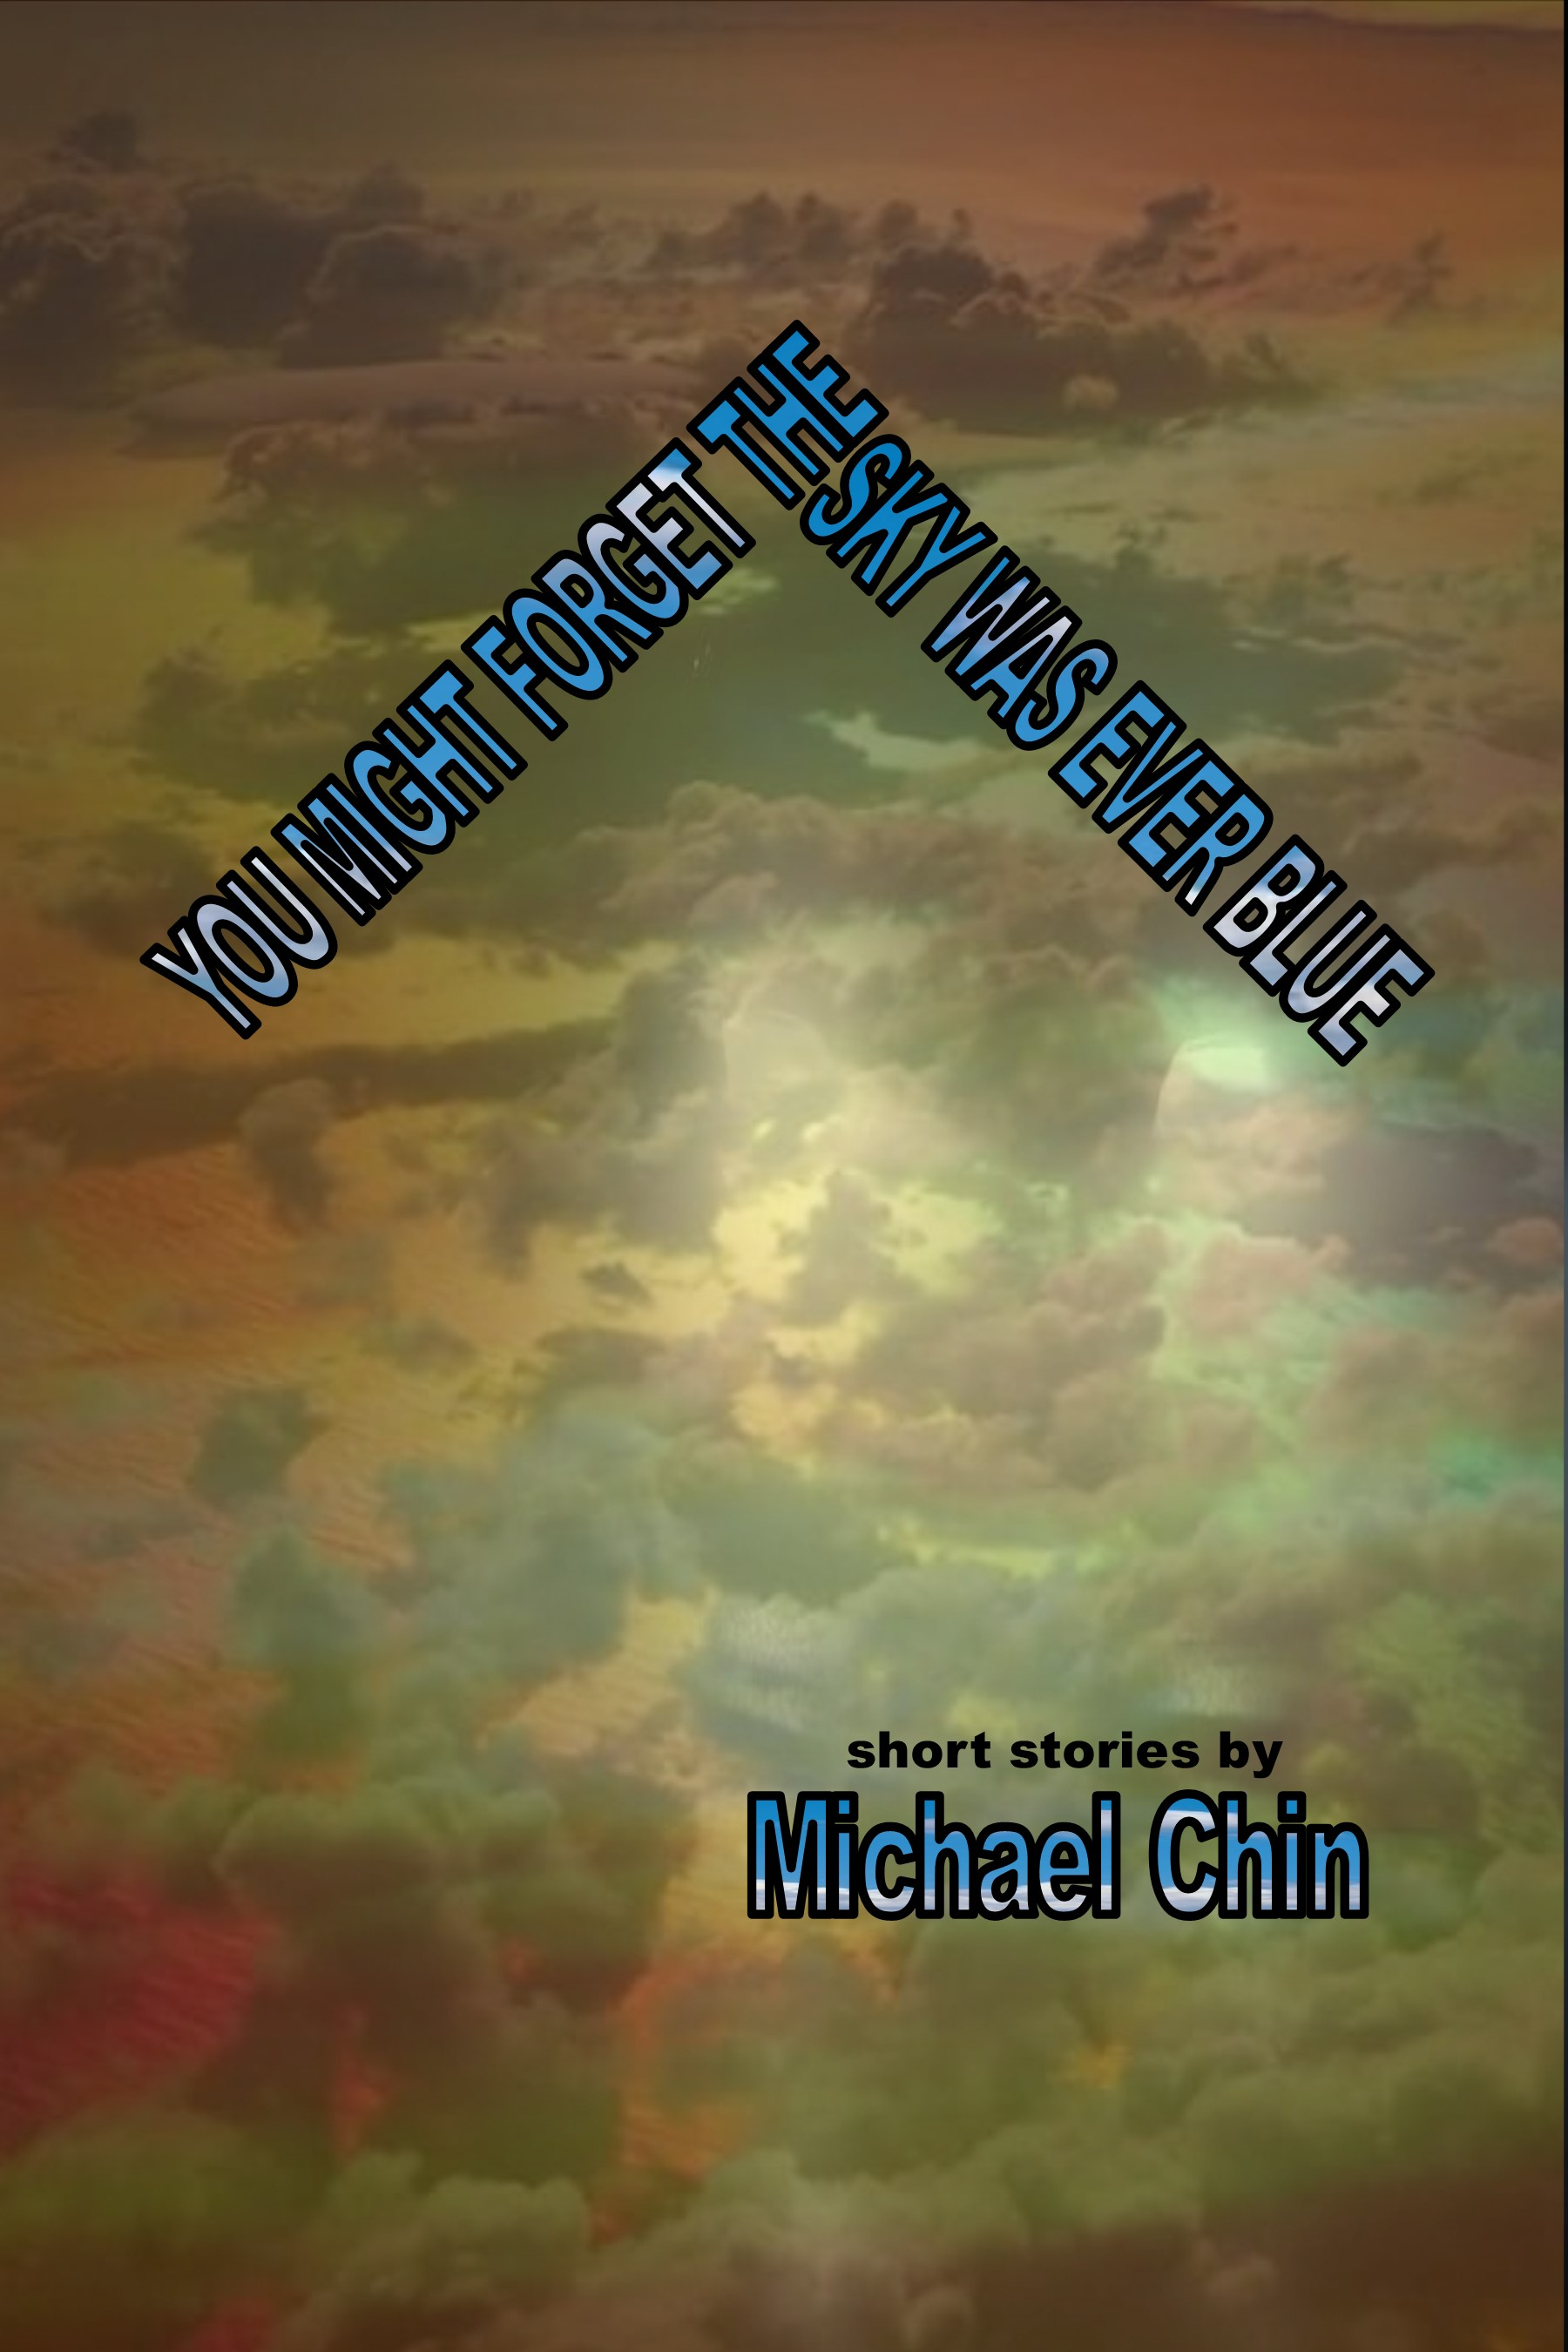 - You Might Forget the Sky was Ever Blue (forthcoming, September 2019) includes stories about third grade teacher in Baltimore trying to make sense of the 2016 election campaign to students, a teenage sexual assault survivor making his way through a changed world, and a boy is raised to believe he's Hulk Hogan's little brother. This book includes experiments in form with a social conscience, including work originally published in Hobart, Iron Horse Literary Review, Bayou Magazine, Front Porch, Waccamaw, Prime Number Magazine, Drunk Monkeys, Random Sample Review, and Extract[s]. It will be published by Duck Lake Books.Pre-orders are available now from the publisher and from Amazon.Read what Kirkus Review has to say about the book here.